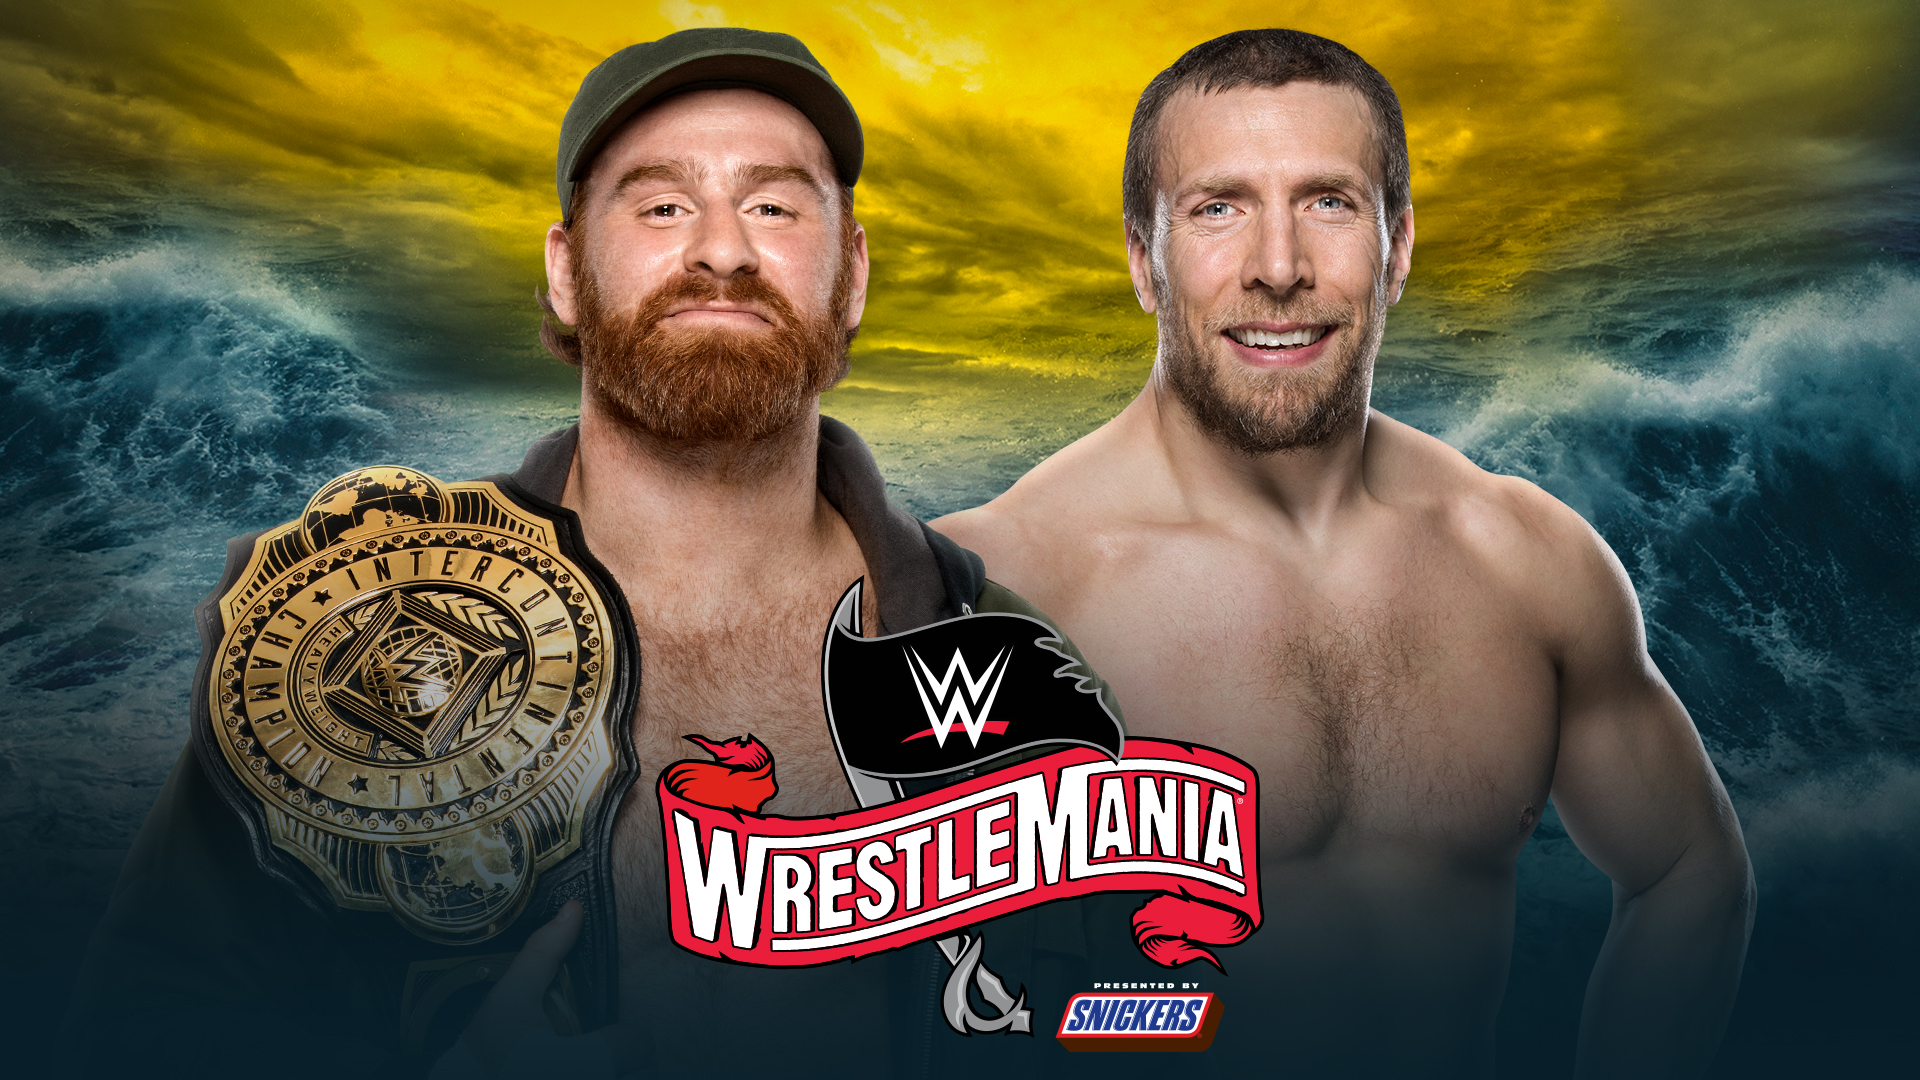 New Announcements On WWE Smackdown, Updated Wrestlemania Match Card 3